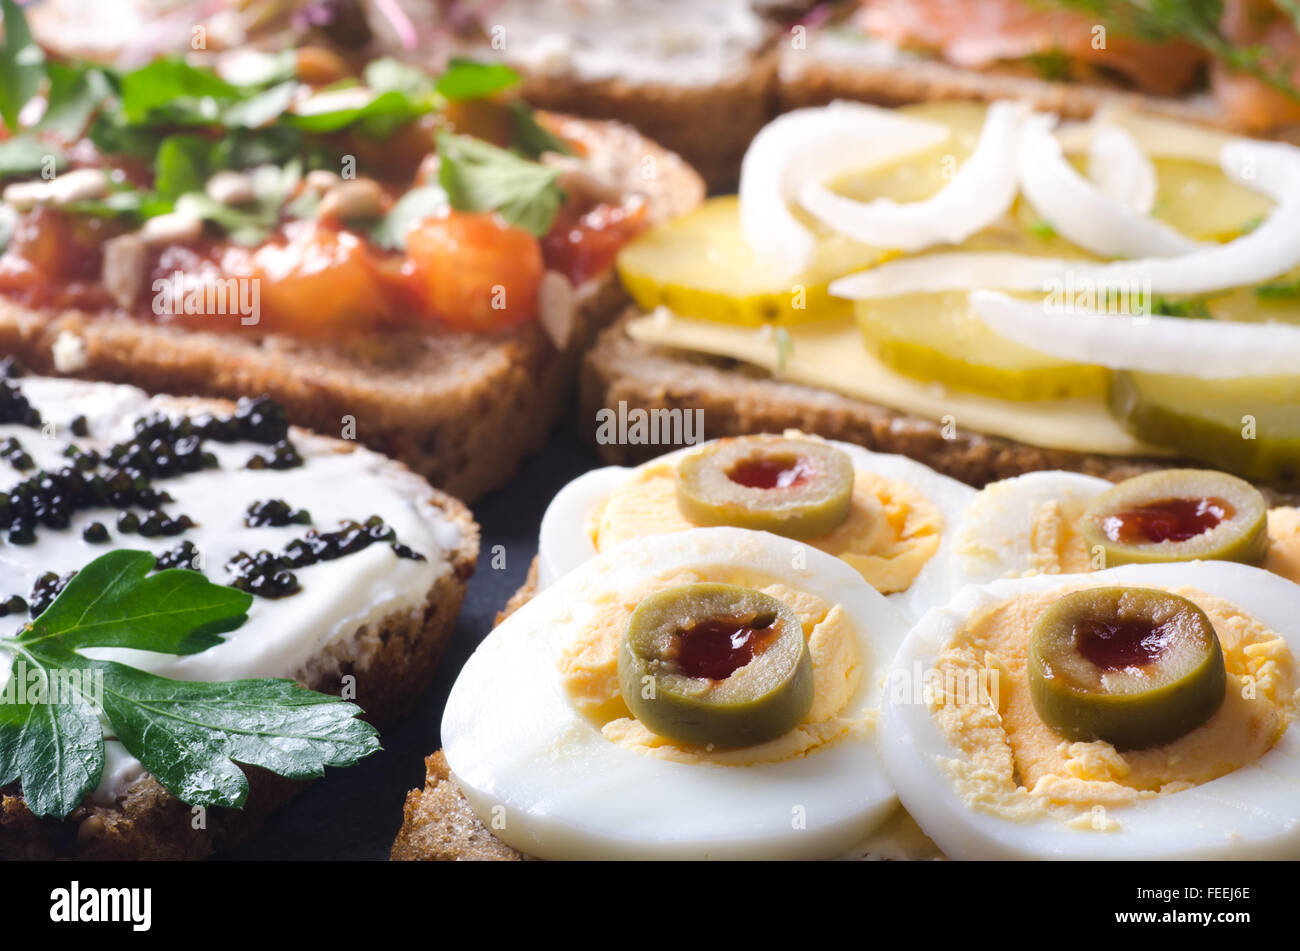 group open sandwiches on table - Stock Image